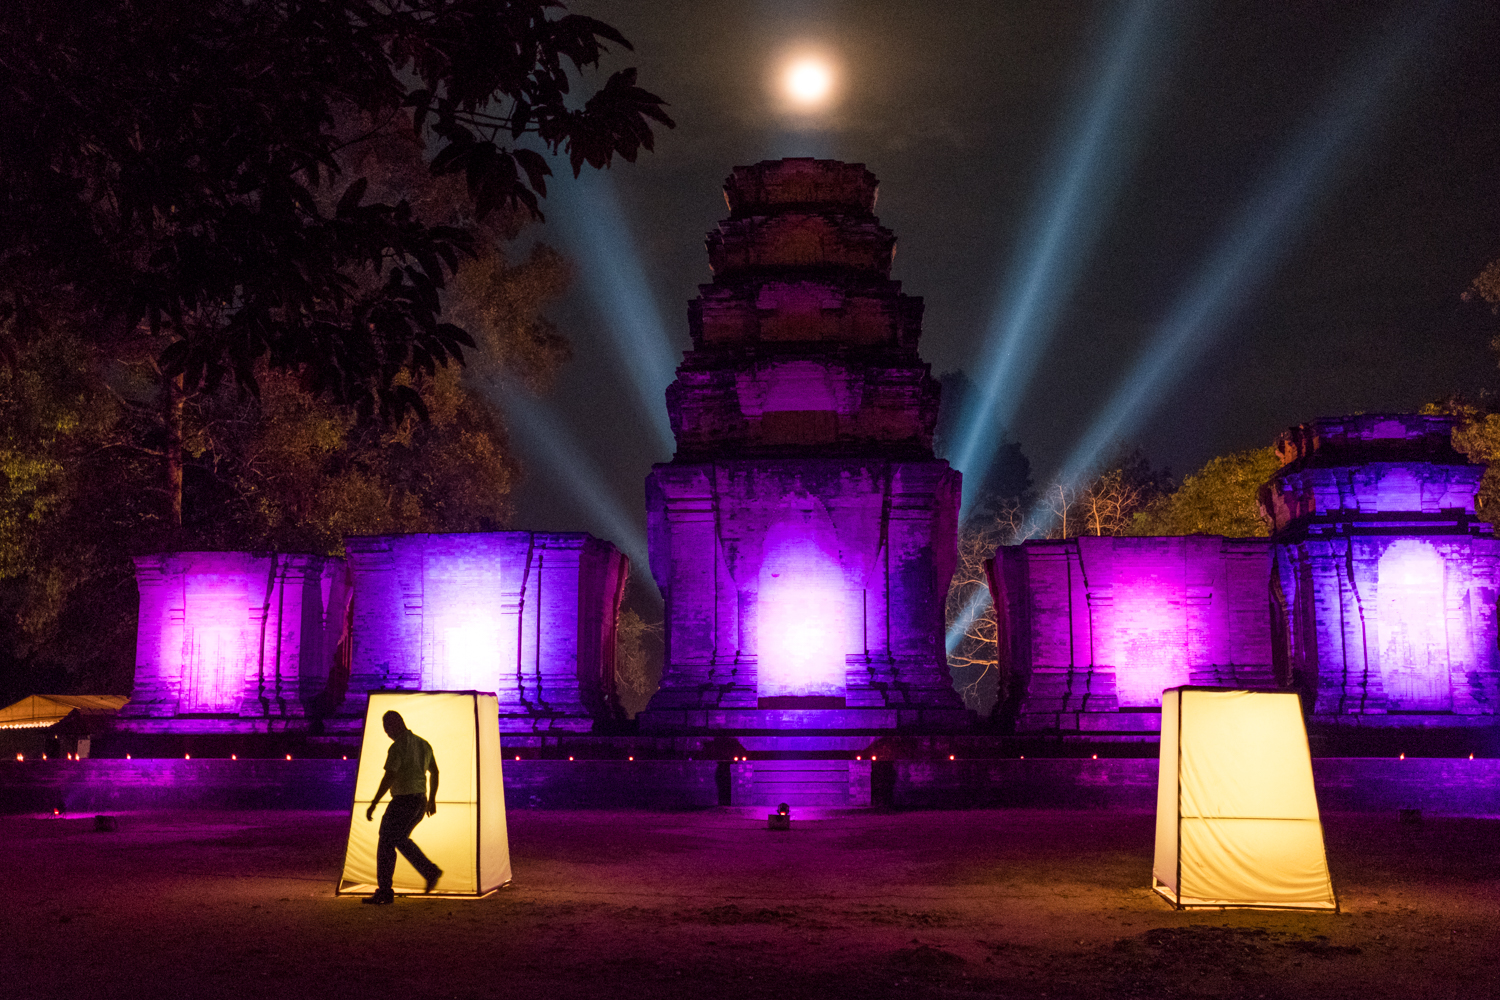 A full moon shines through the haze above Prasat Kravan, a 10th-century temple located in Angkor, Cambodia.